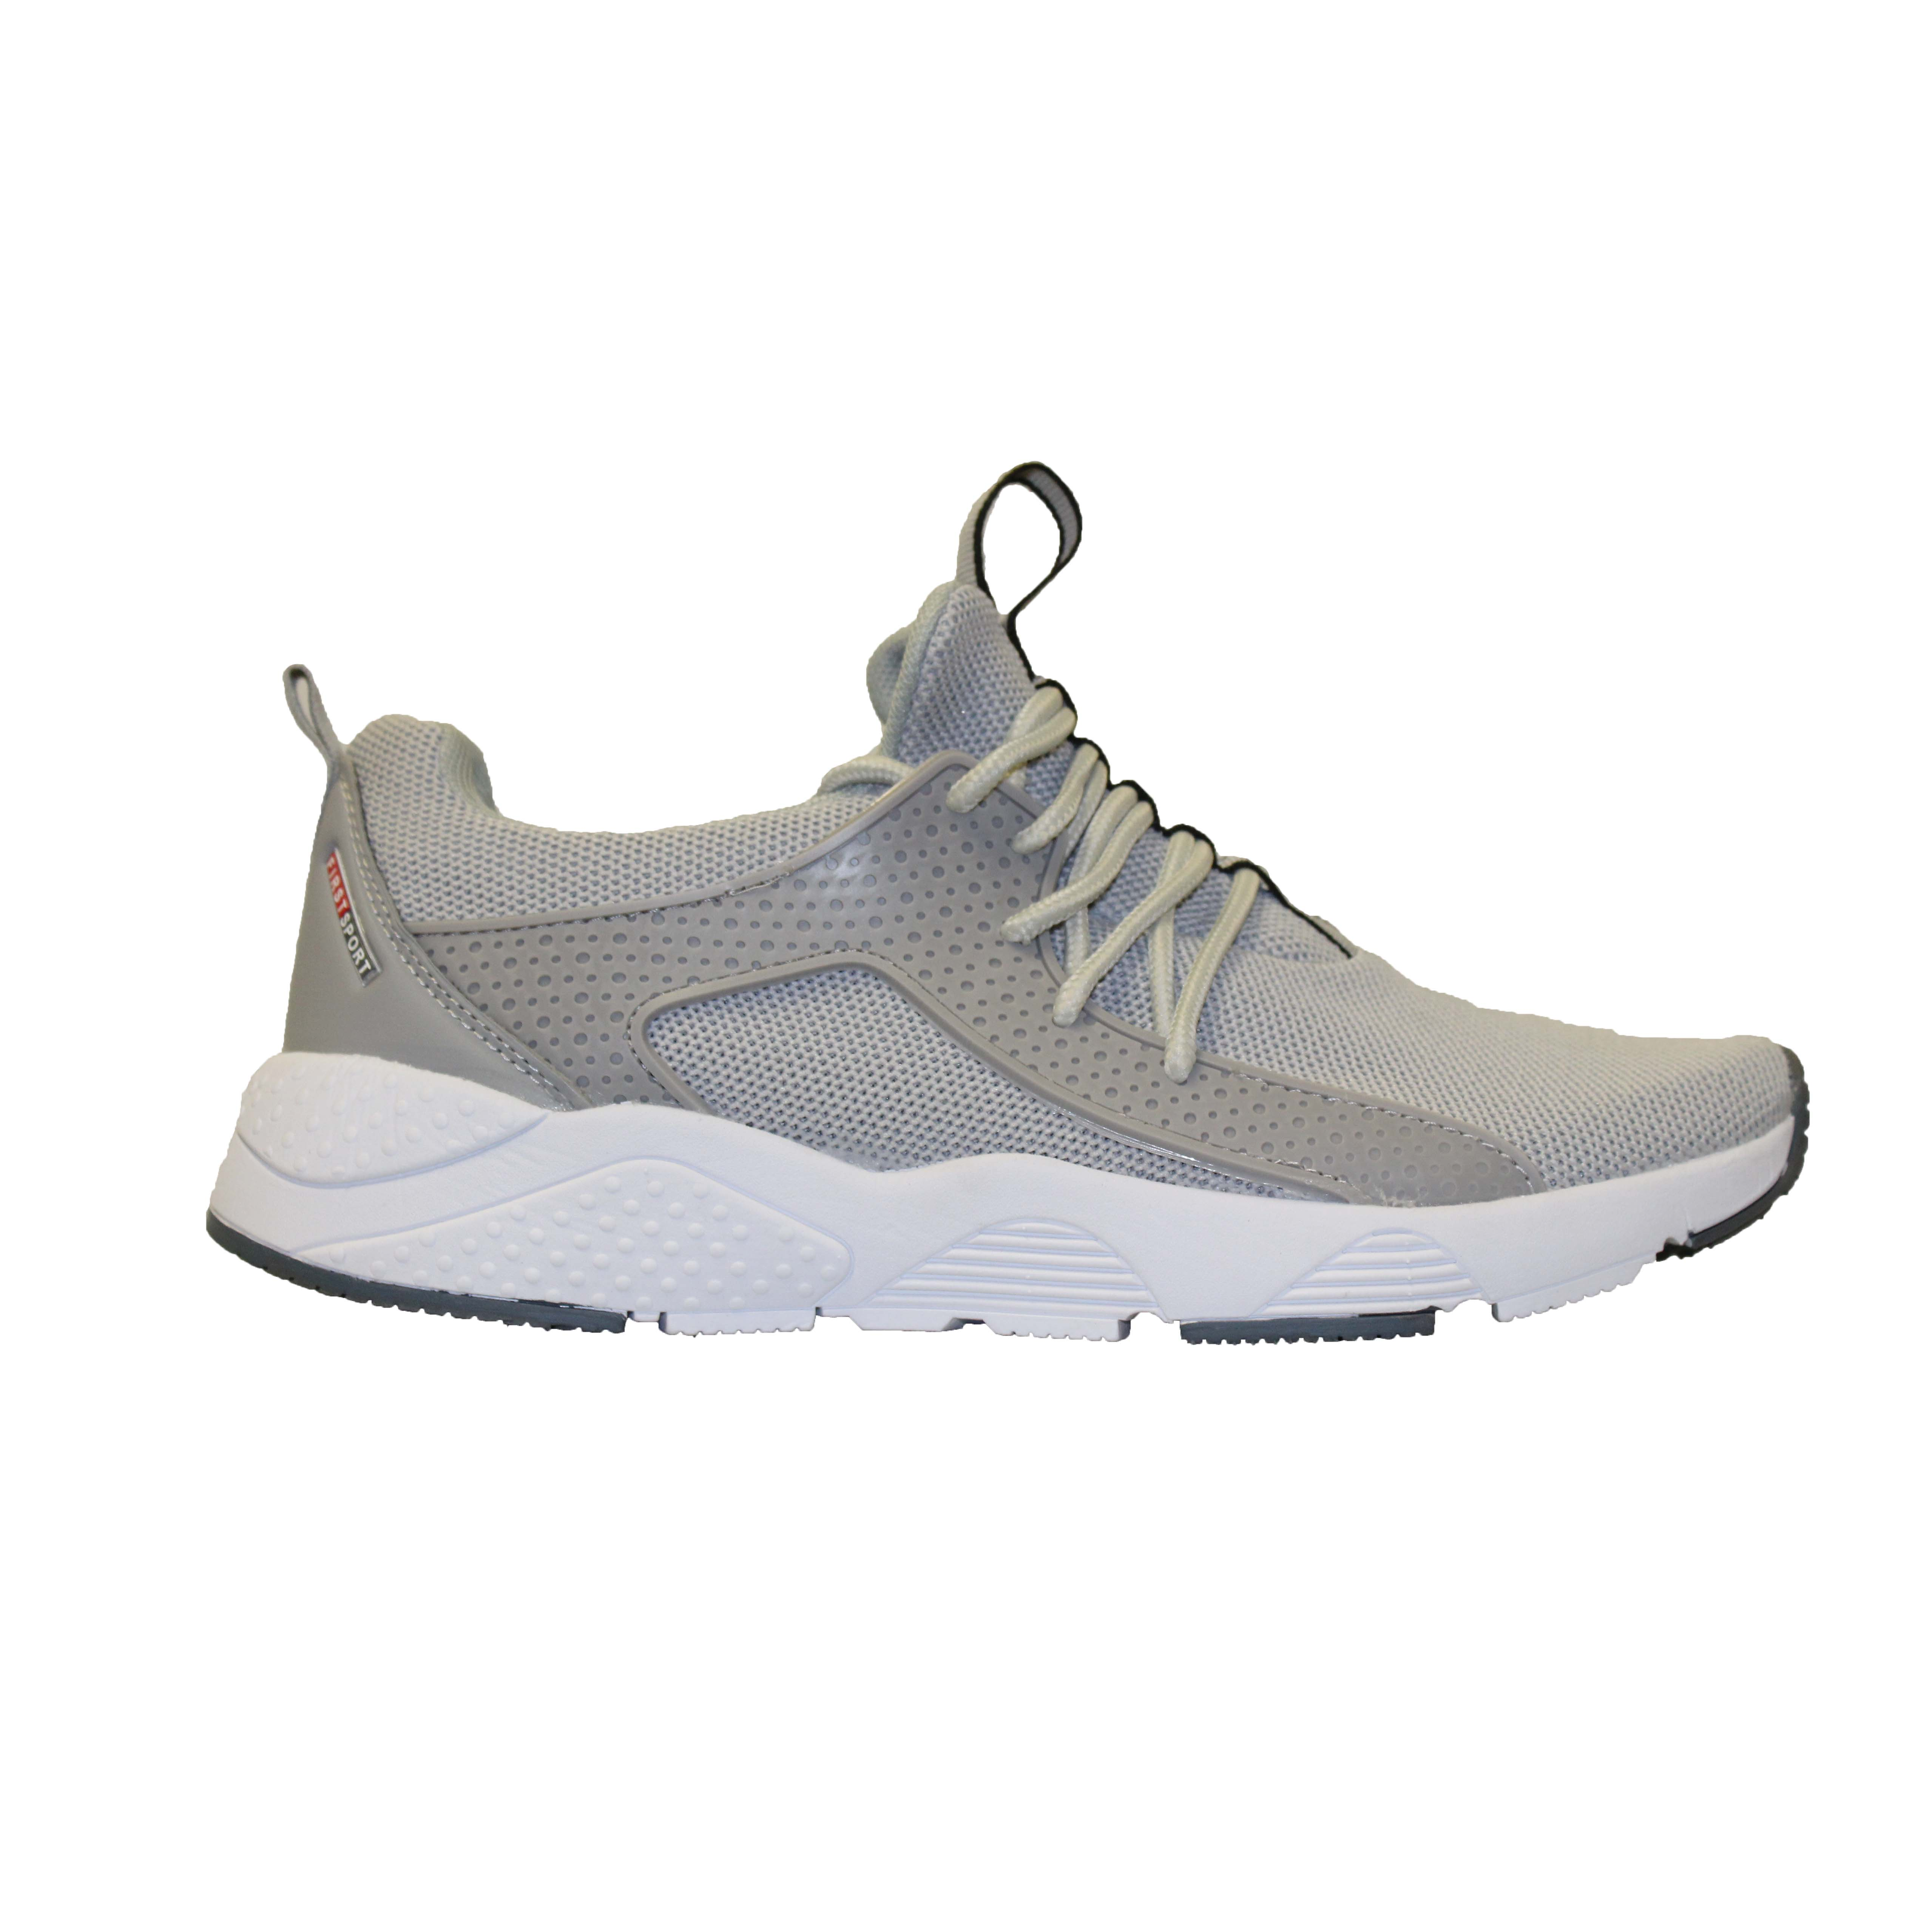 quality design 1bebe e4982 (sale) First Sport Men Running Shoes: (06291) Monument